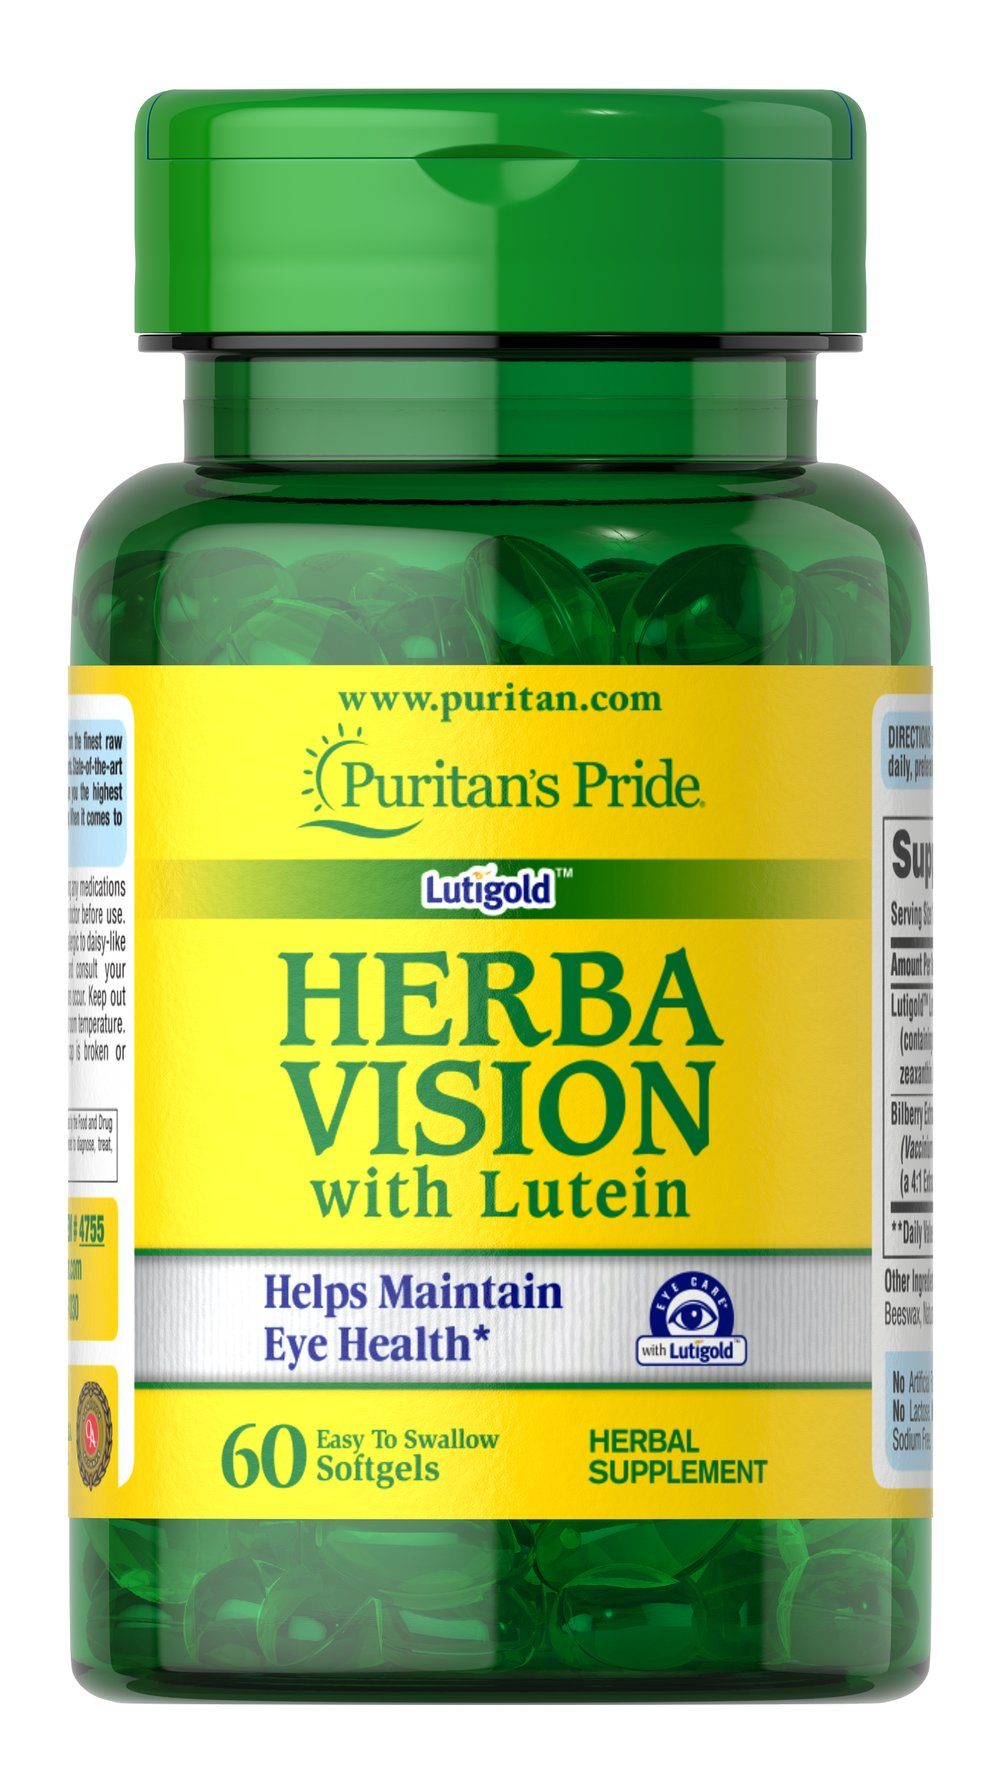 Herbavision with Lutein and Bilberry <p><strong>Nutritional support for your eyes**</strong></p><p>Contributes to clear, healthy vision**</p><p>Formulated with Lutigold™ Lutein, derived from pure, natural sources</p><p>Contains naturally occurring protective antioxidants and active carotenoids, such as Zeaxanthin, for synergistic support**</p><p>Comes in convenient, easy-to-swallow softgels</p> 60 Softgels  $6.89